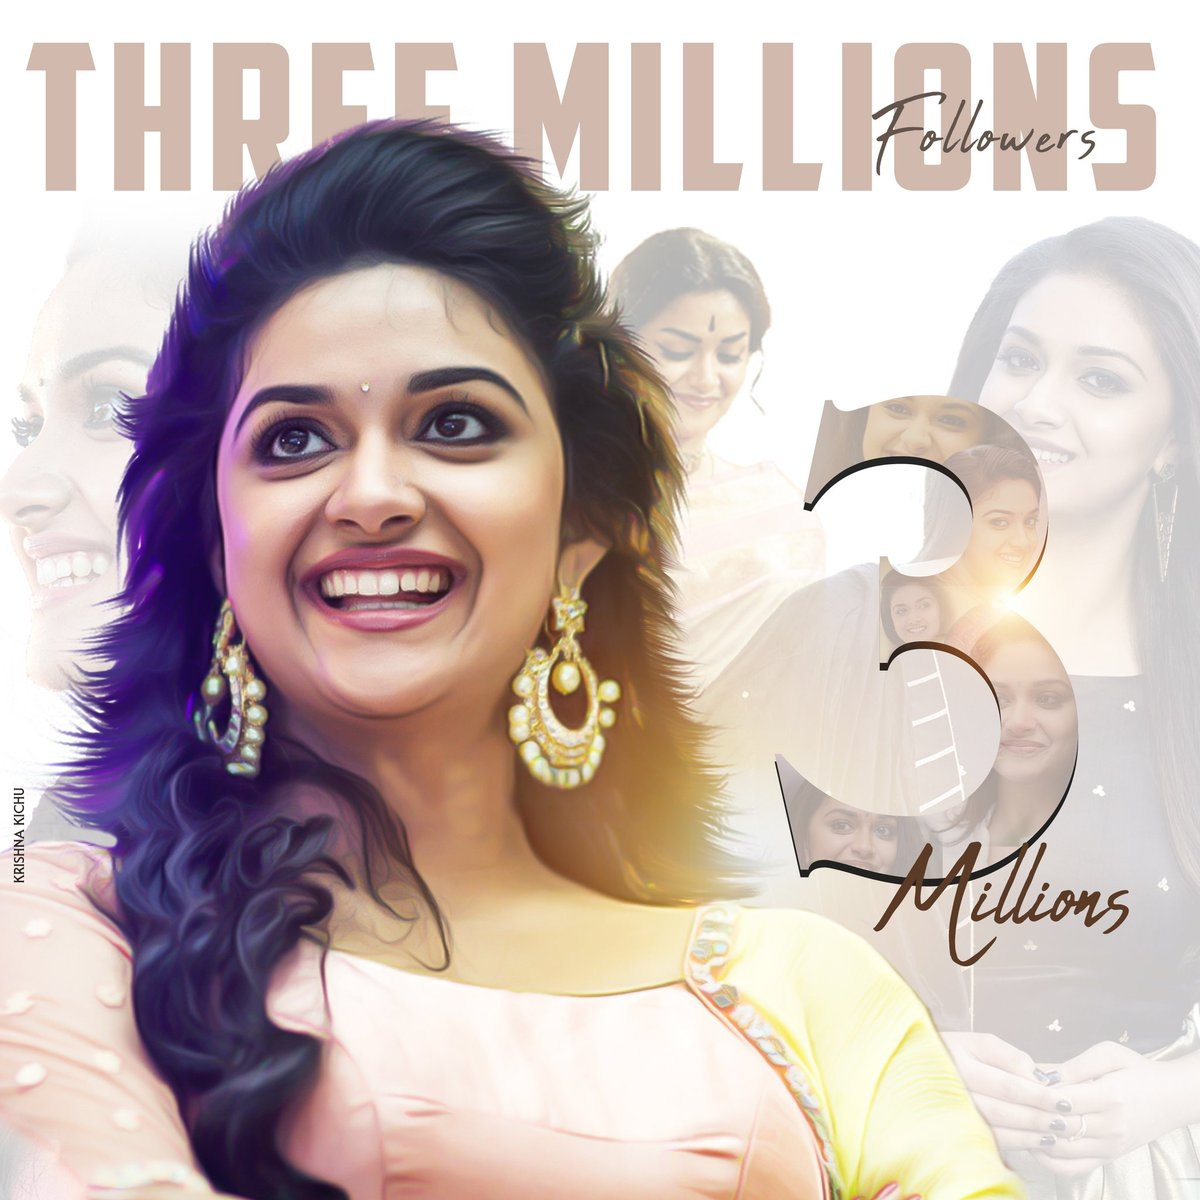 Congrats.. thalaivi for reached 3 Million families   more on the way bae  @KeerthyOfficial #KeerthyAdvBdayTrendOnJuly8   #3MLovesForKittyInTwitter #KeerthySuresh  #HappyBirthdayDhoni  #HappyBirthdayMSDhonipic.twitter.com/Od88N1JRMn